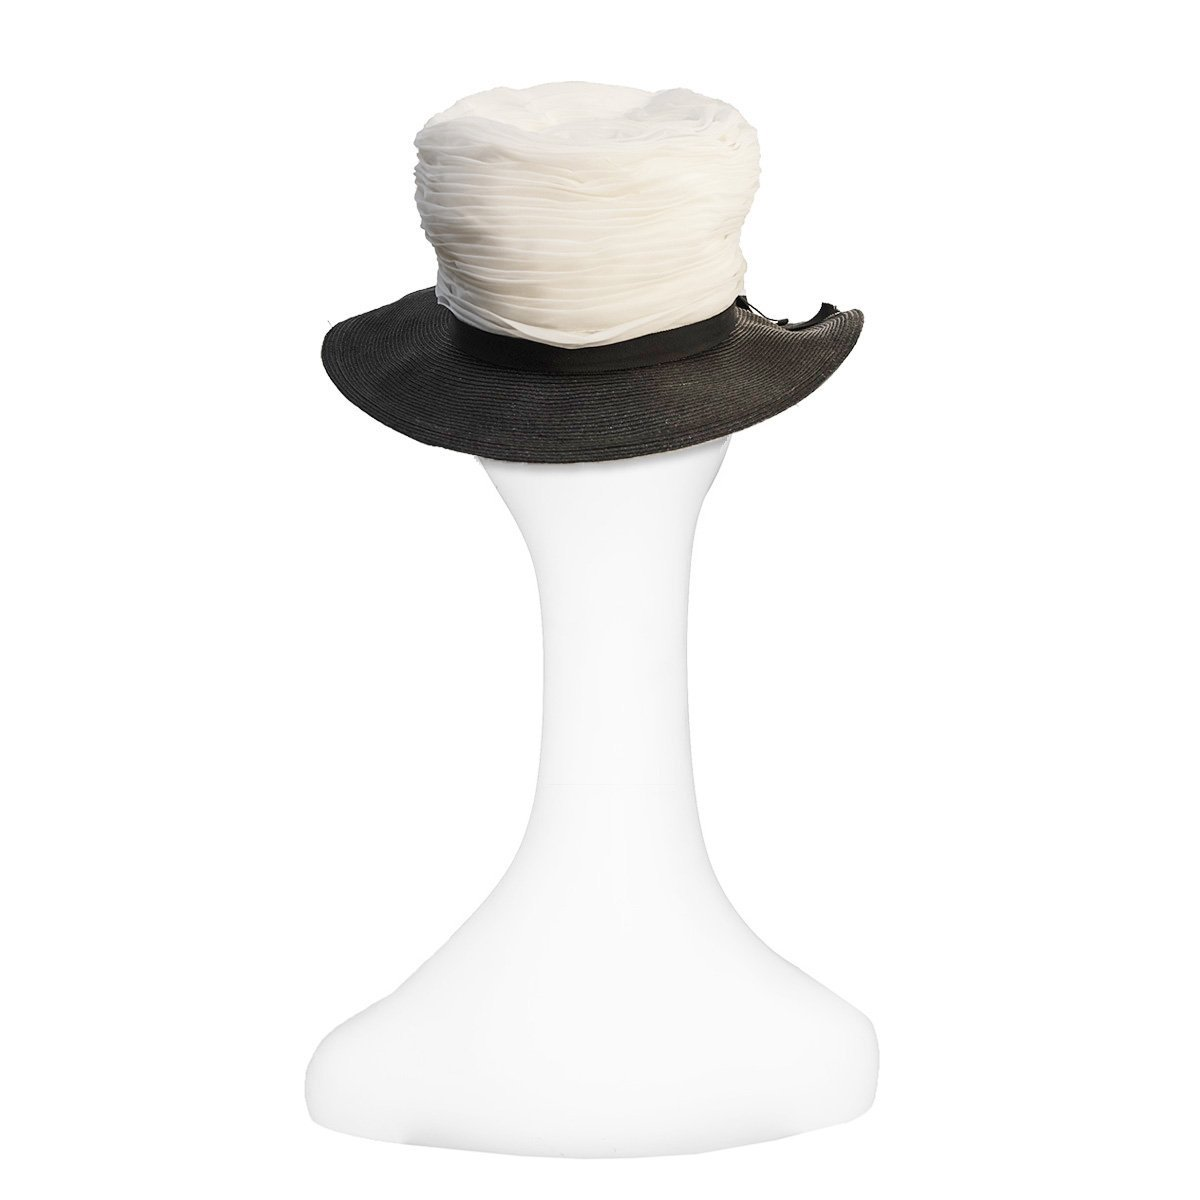 Straw and Silk Chiffon Hat in Black & White 4